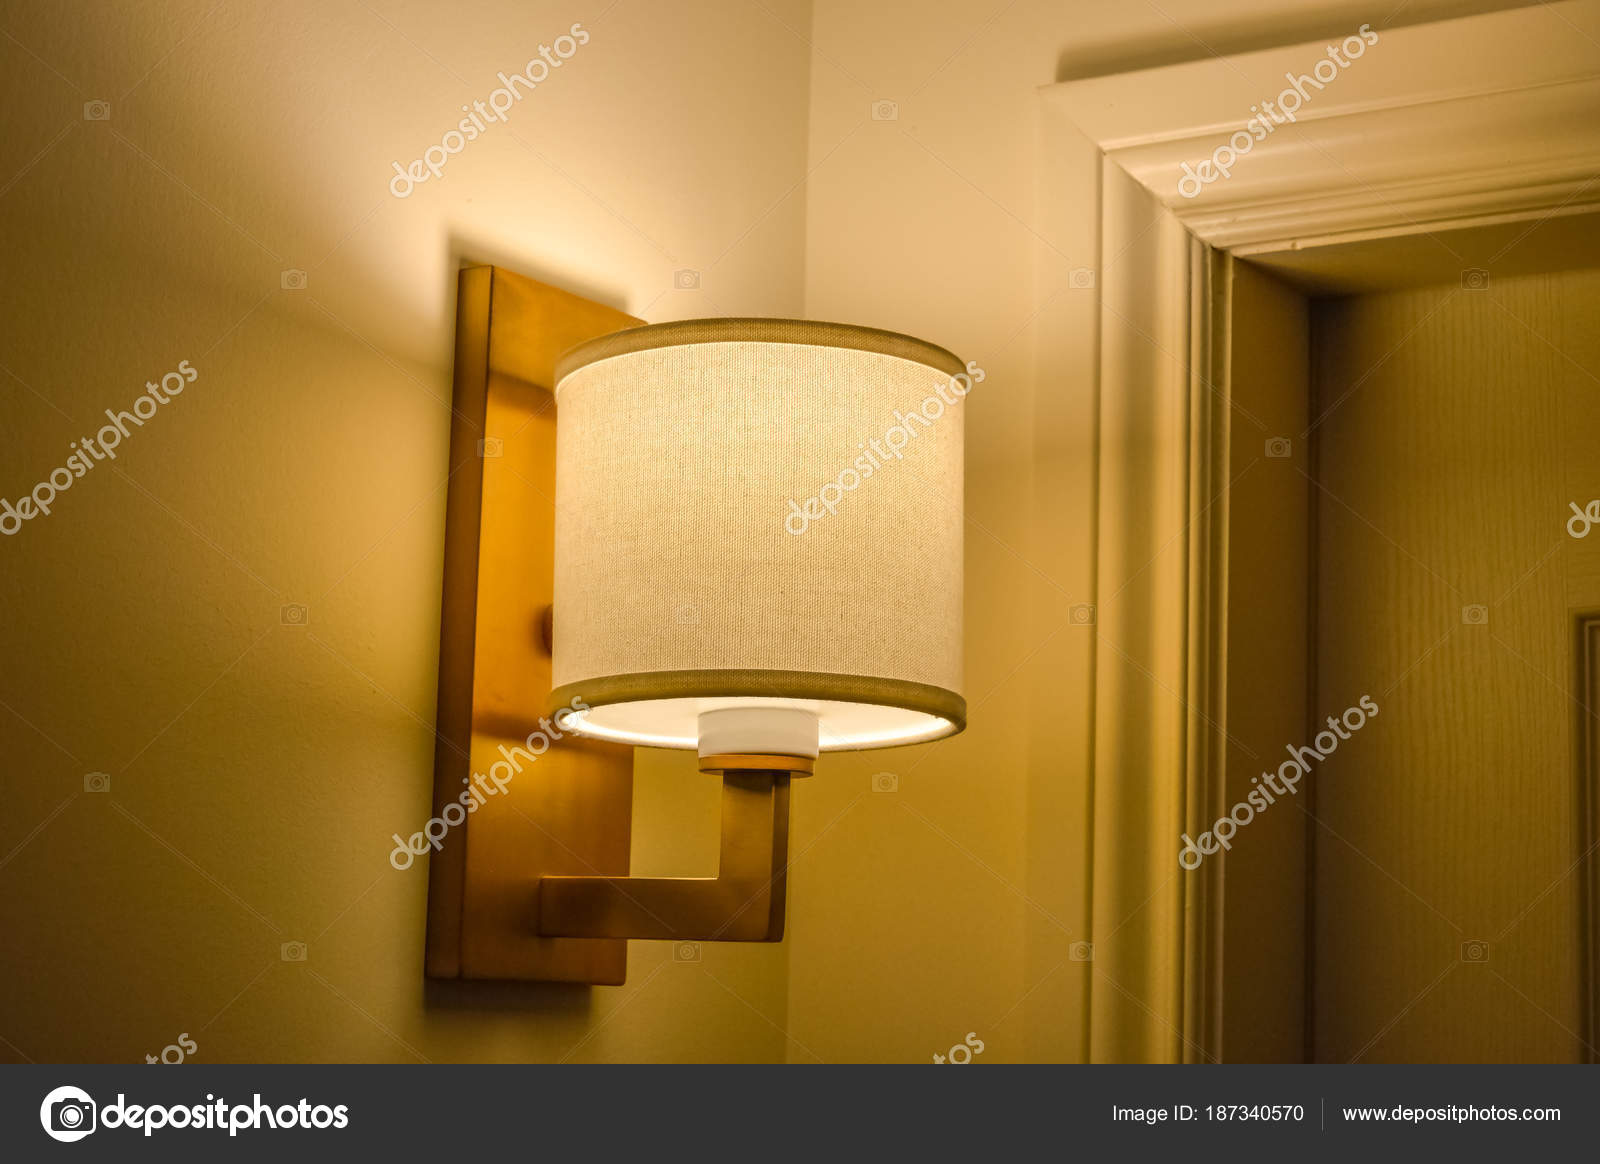 Wall Lamp Shadow Long Shutter Speed — Stock Photo © bakerjarvis ...